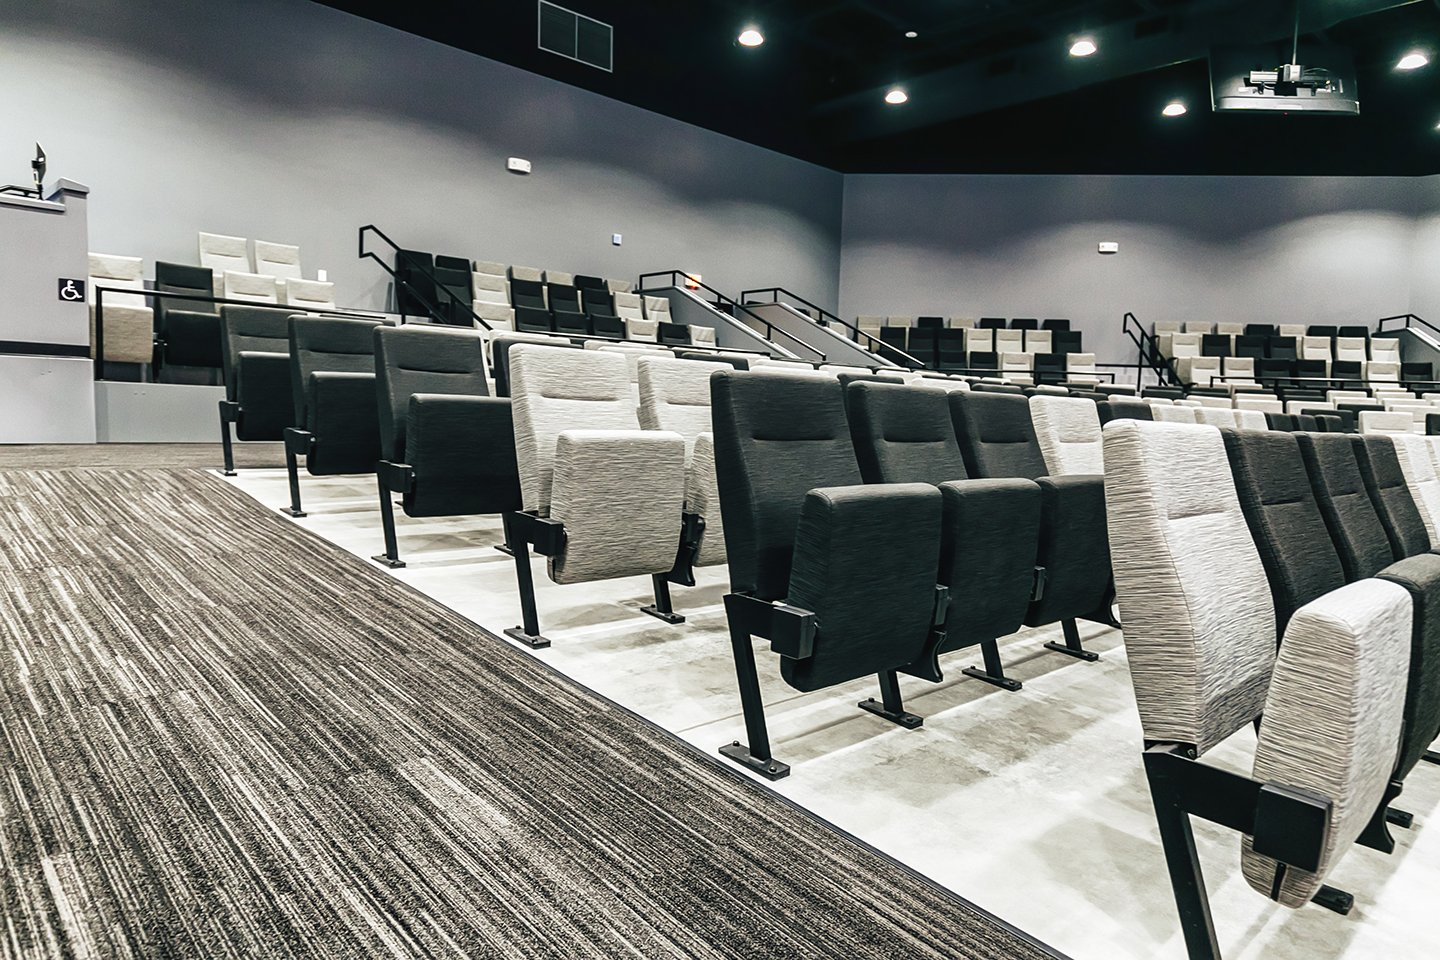 faith-assembly-worship-seating-wide-web